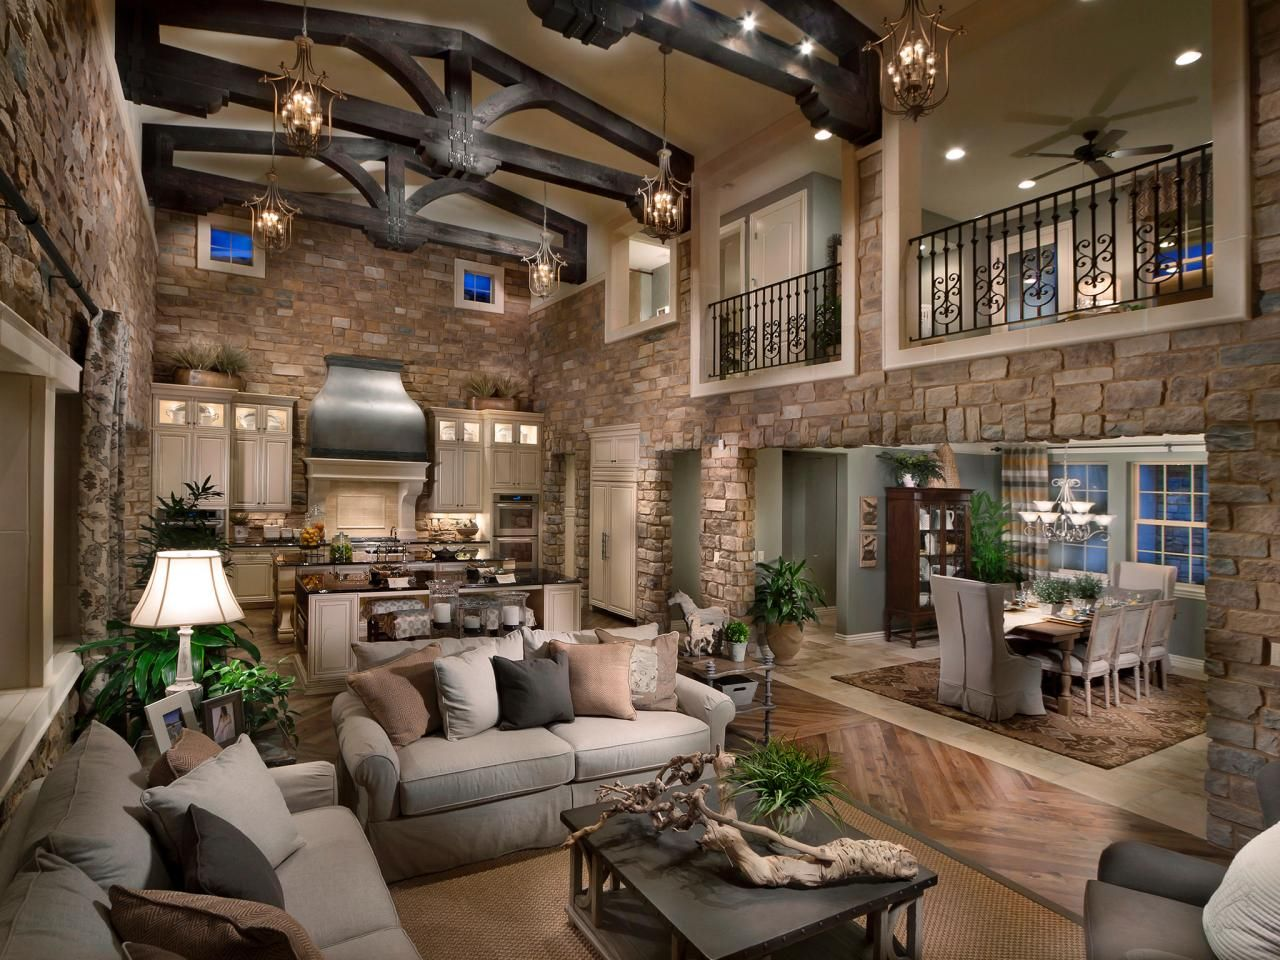 Best This Rustic Living Room And Kitchen Is A Magnificent Space That Has Stone Walls And Vaulted 400 x 300